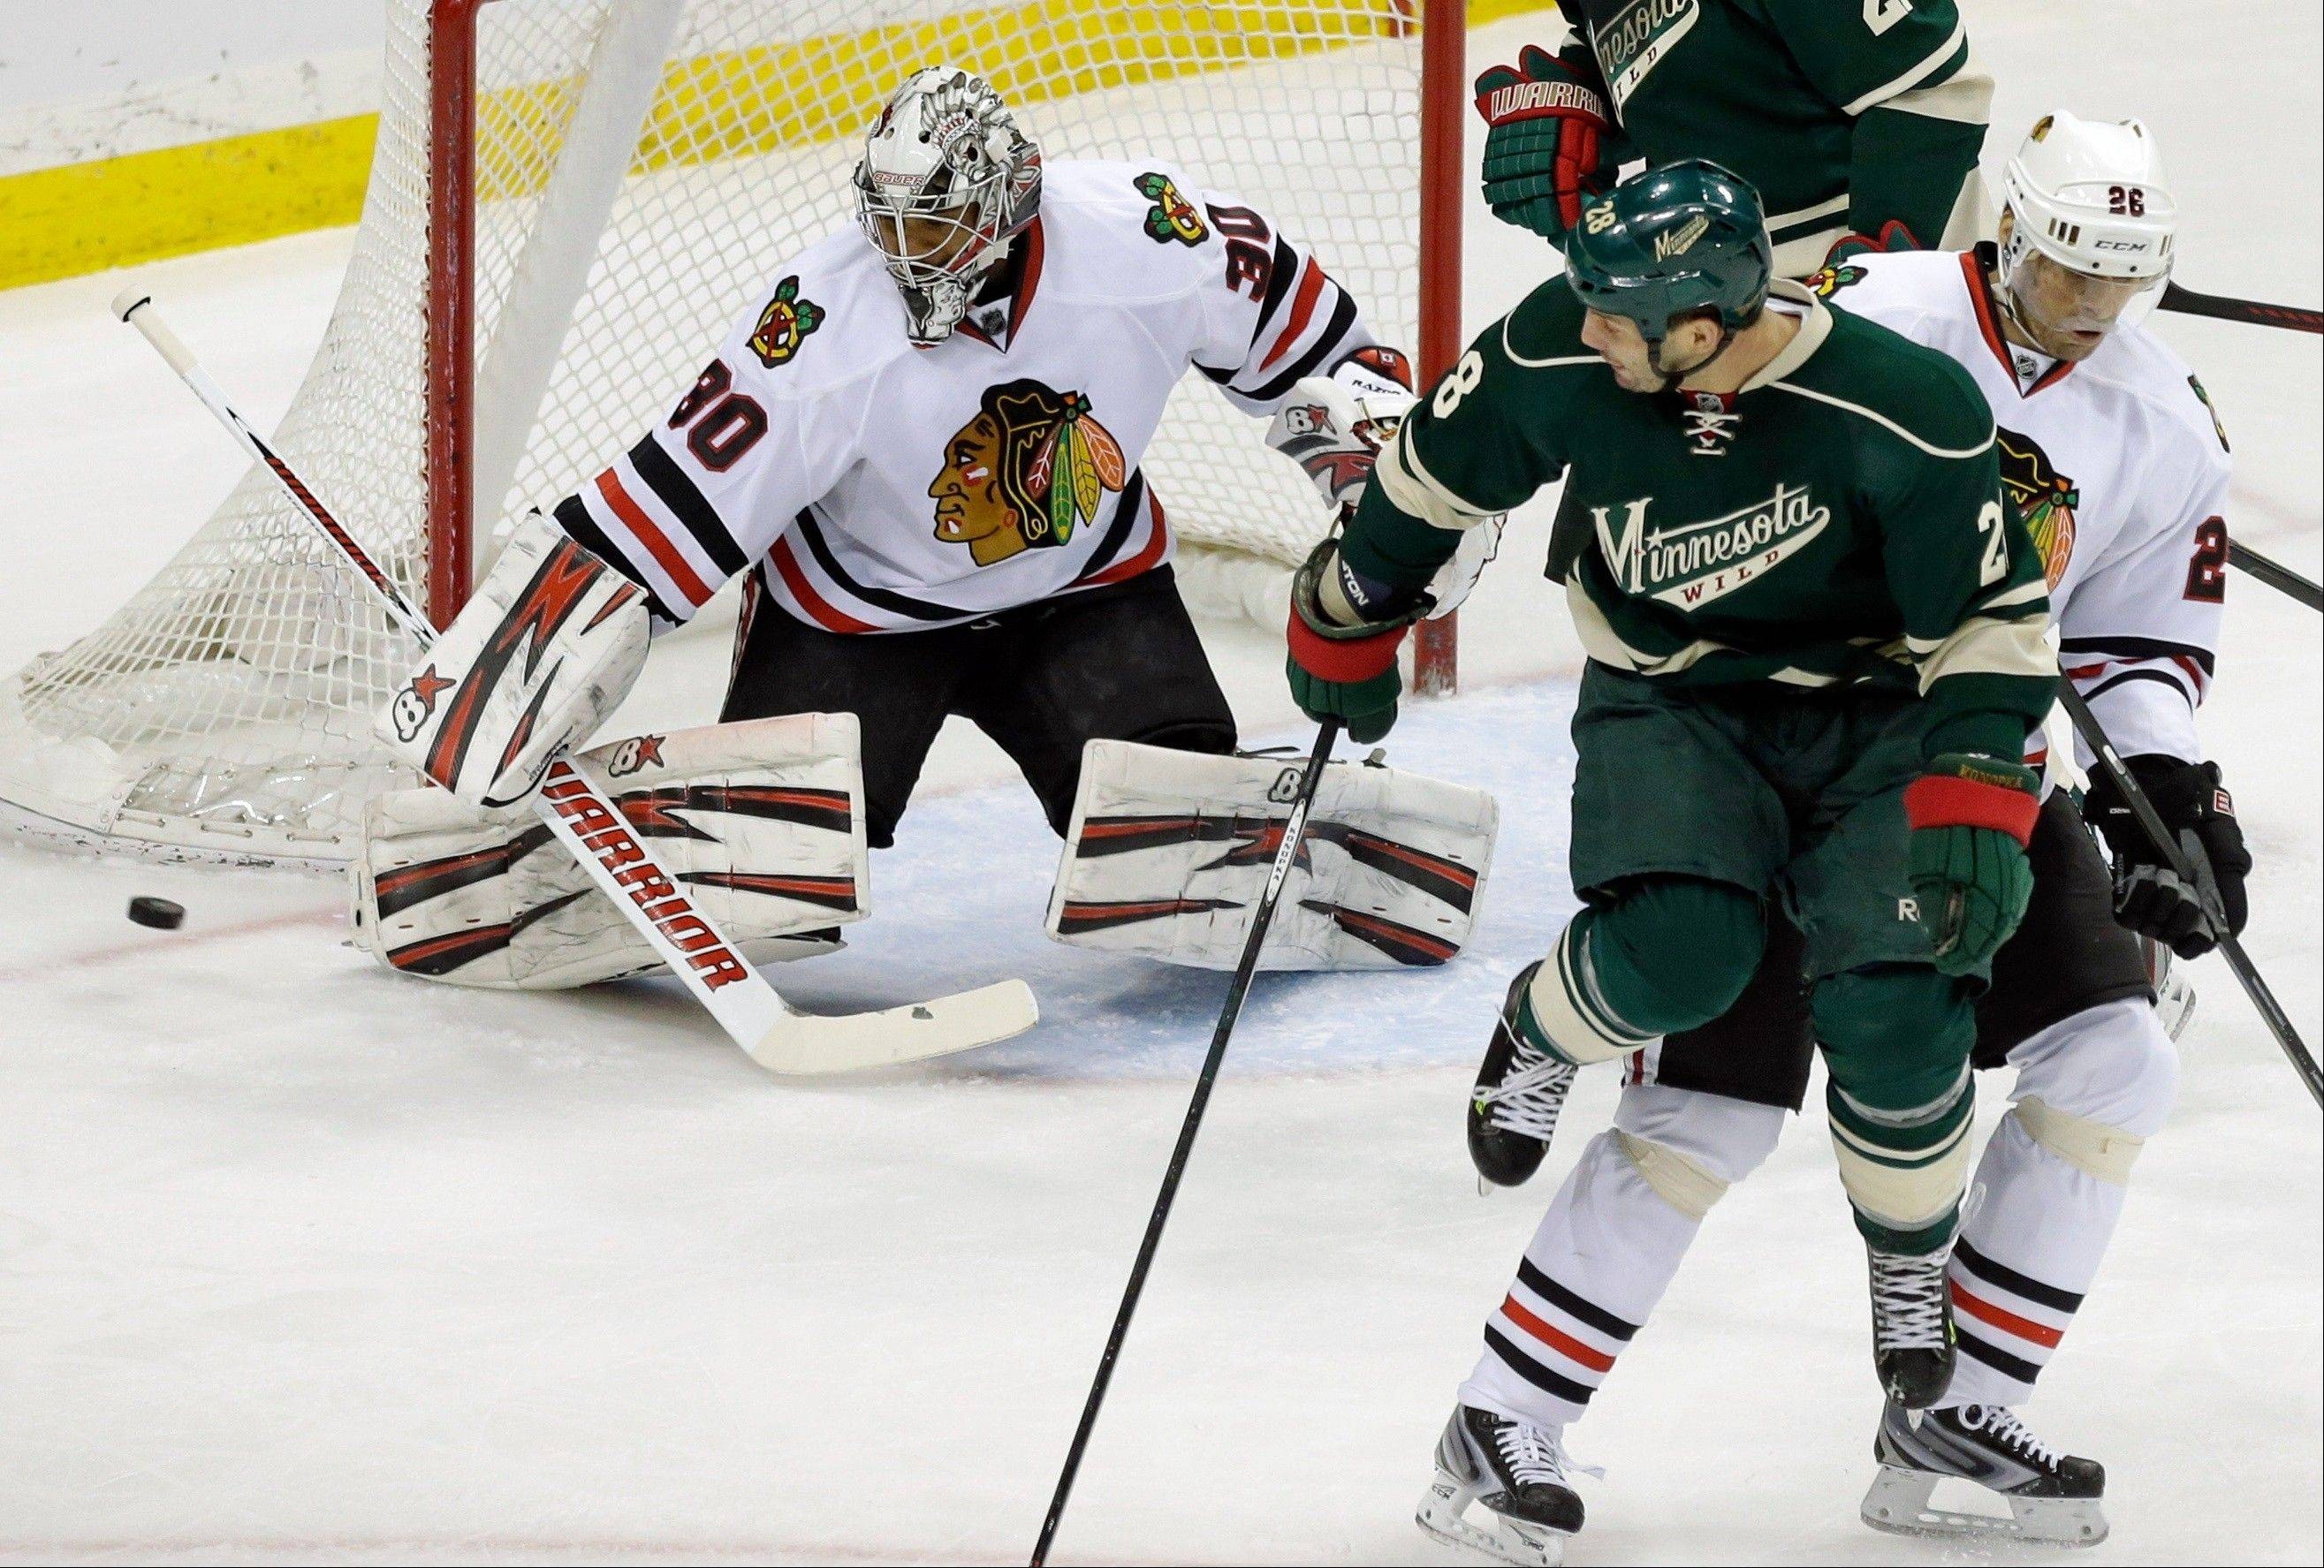 Minnesota Wild's Zenon Konopka, second from right, jumps to make way for a shot which went wide of Chicago Blackhawks goalie Ray Emery in the first period of an NHL hockey game Tuesday, April 9, 2013 in St. Paul.At right is Blackhawks' Michael Handzus.